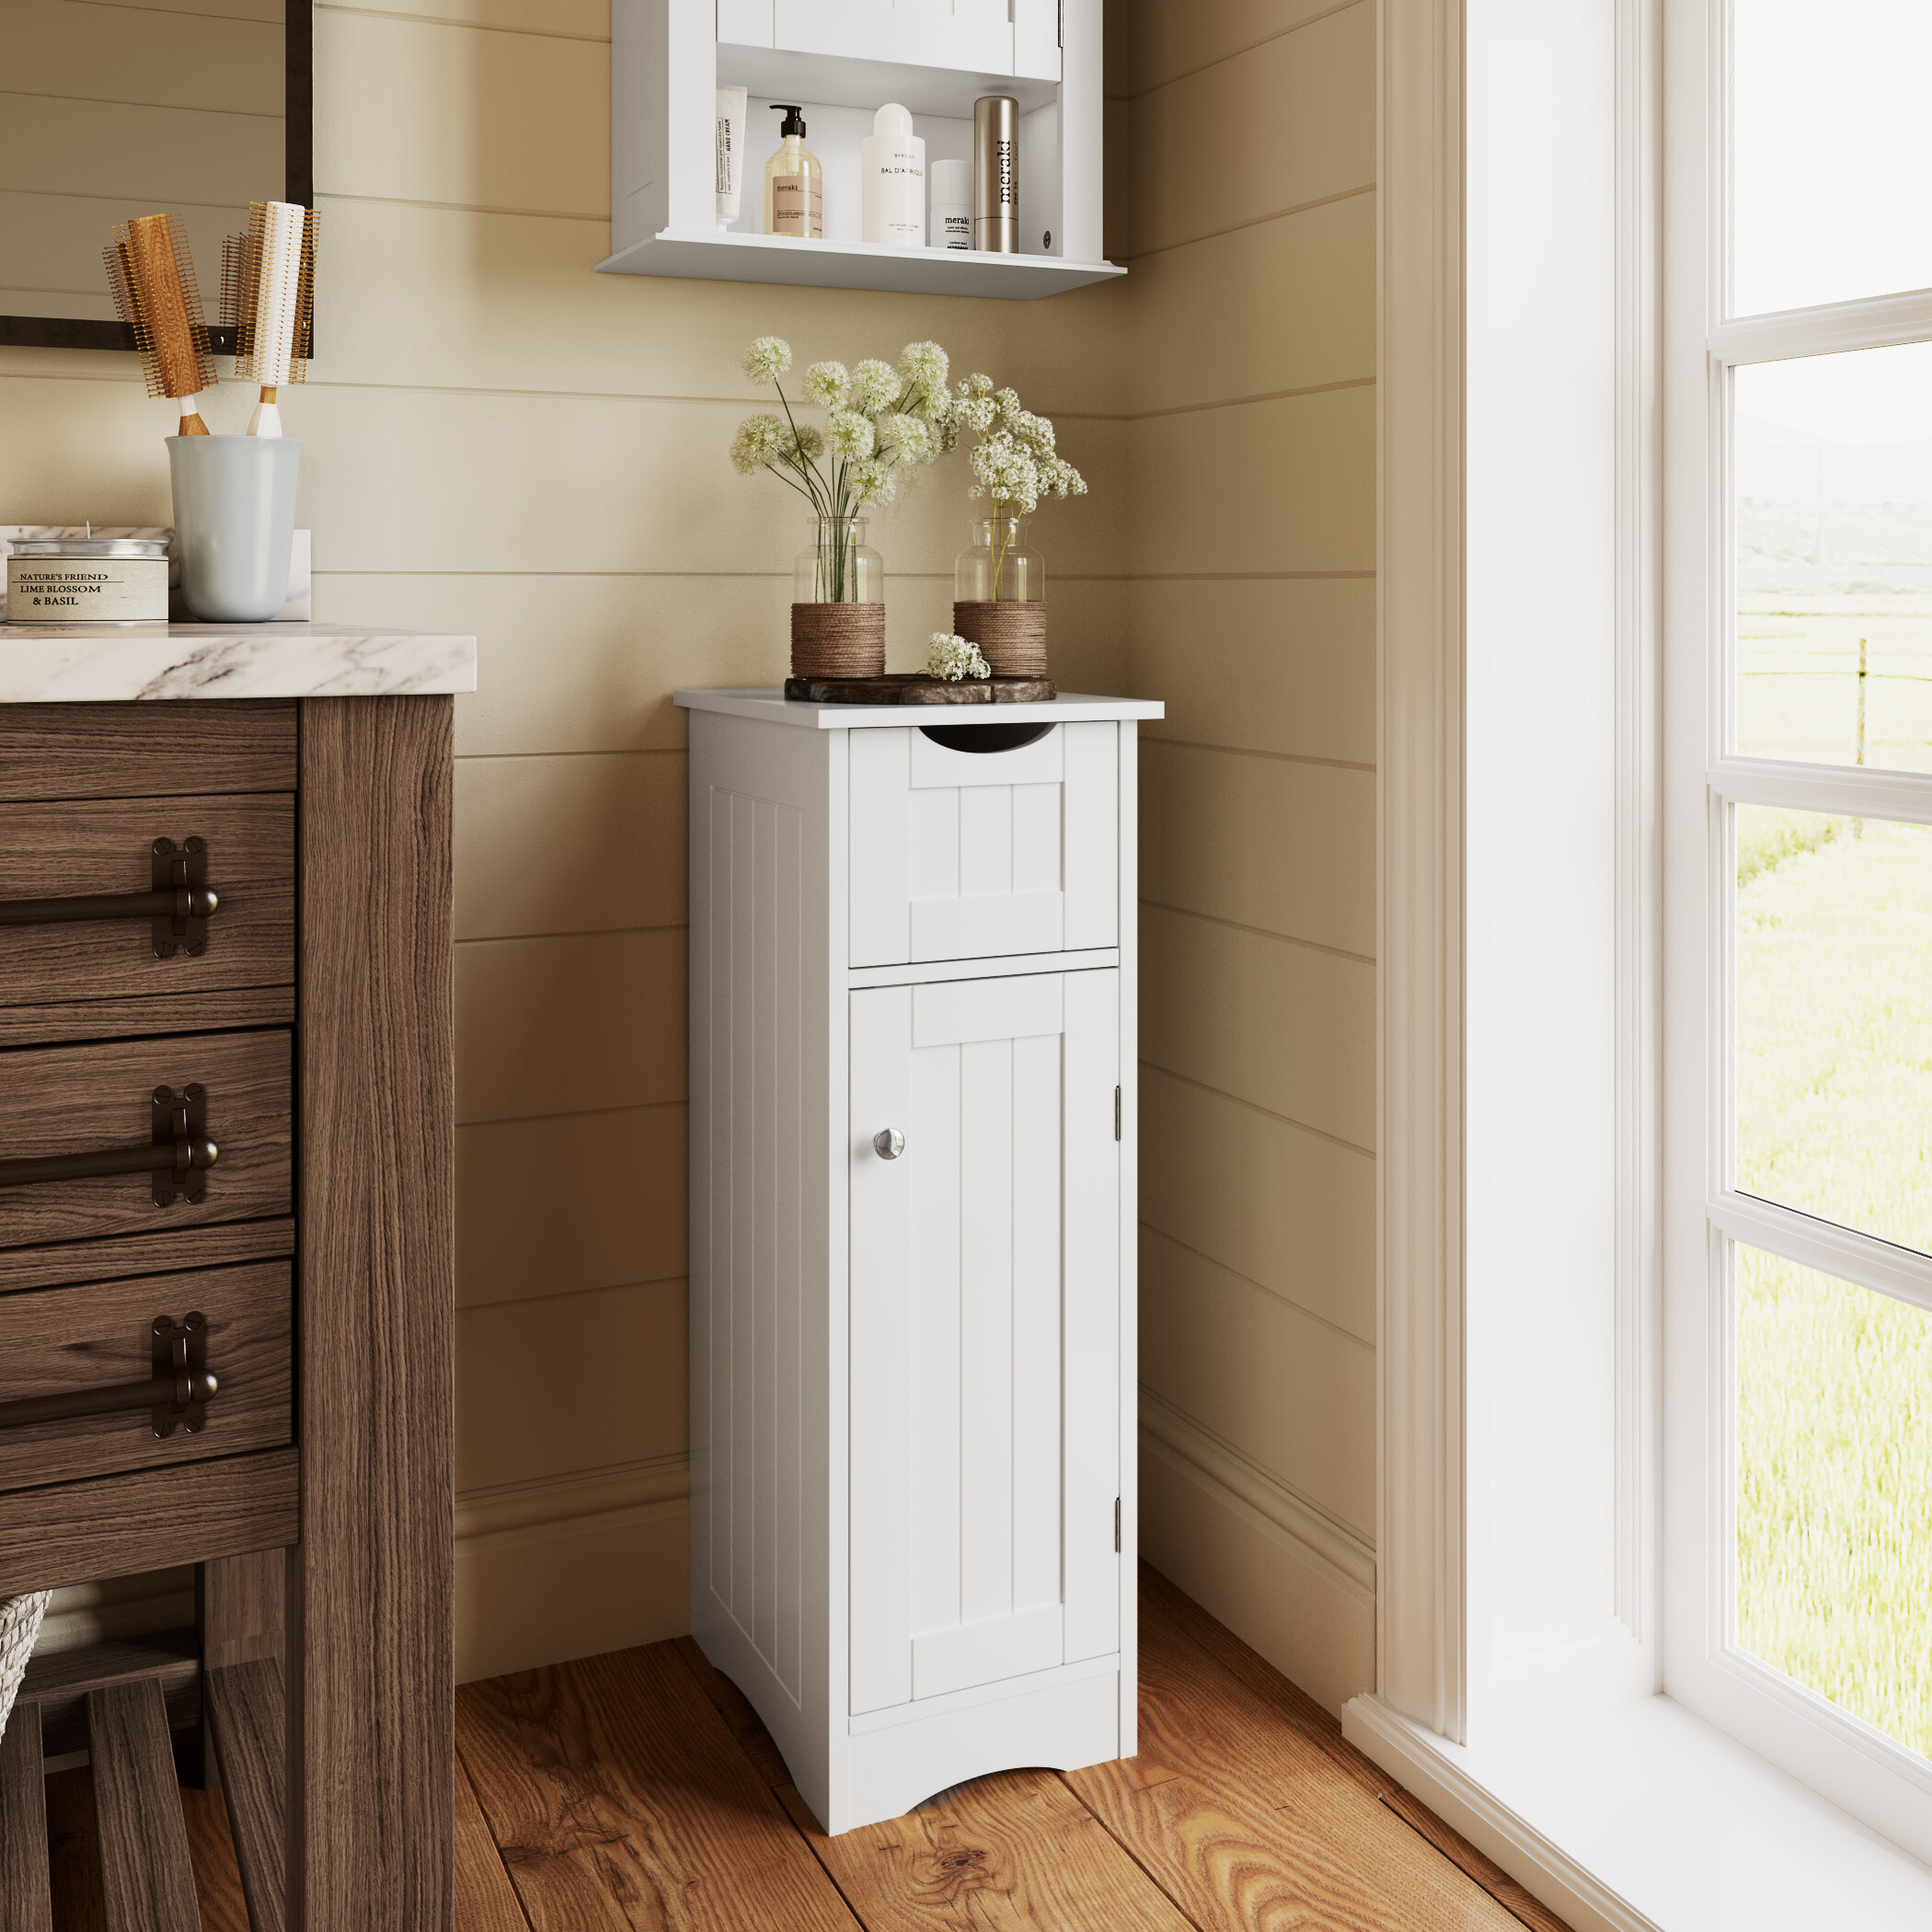 Picture of: Dovecove Ashland 13 5 W X 32 H X 11 D Free Standing Bathroom Cabinet Wayfair